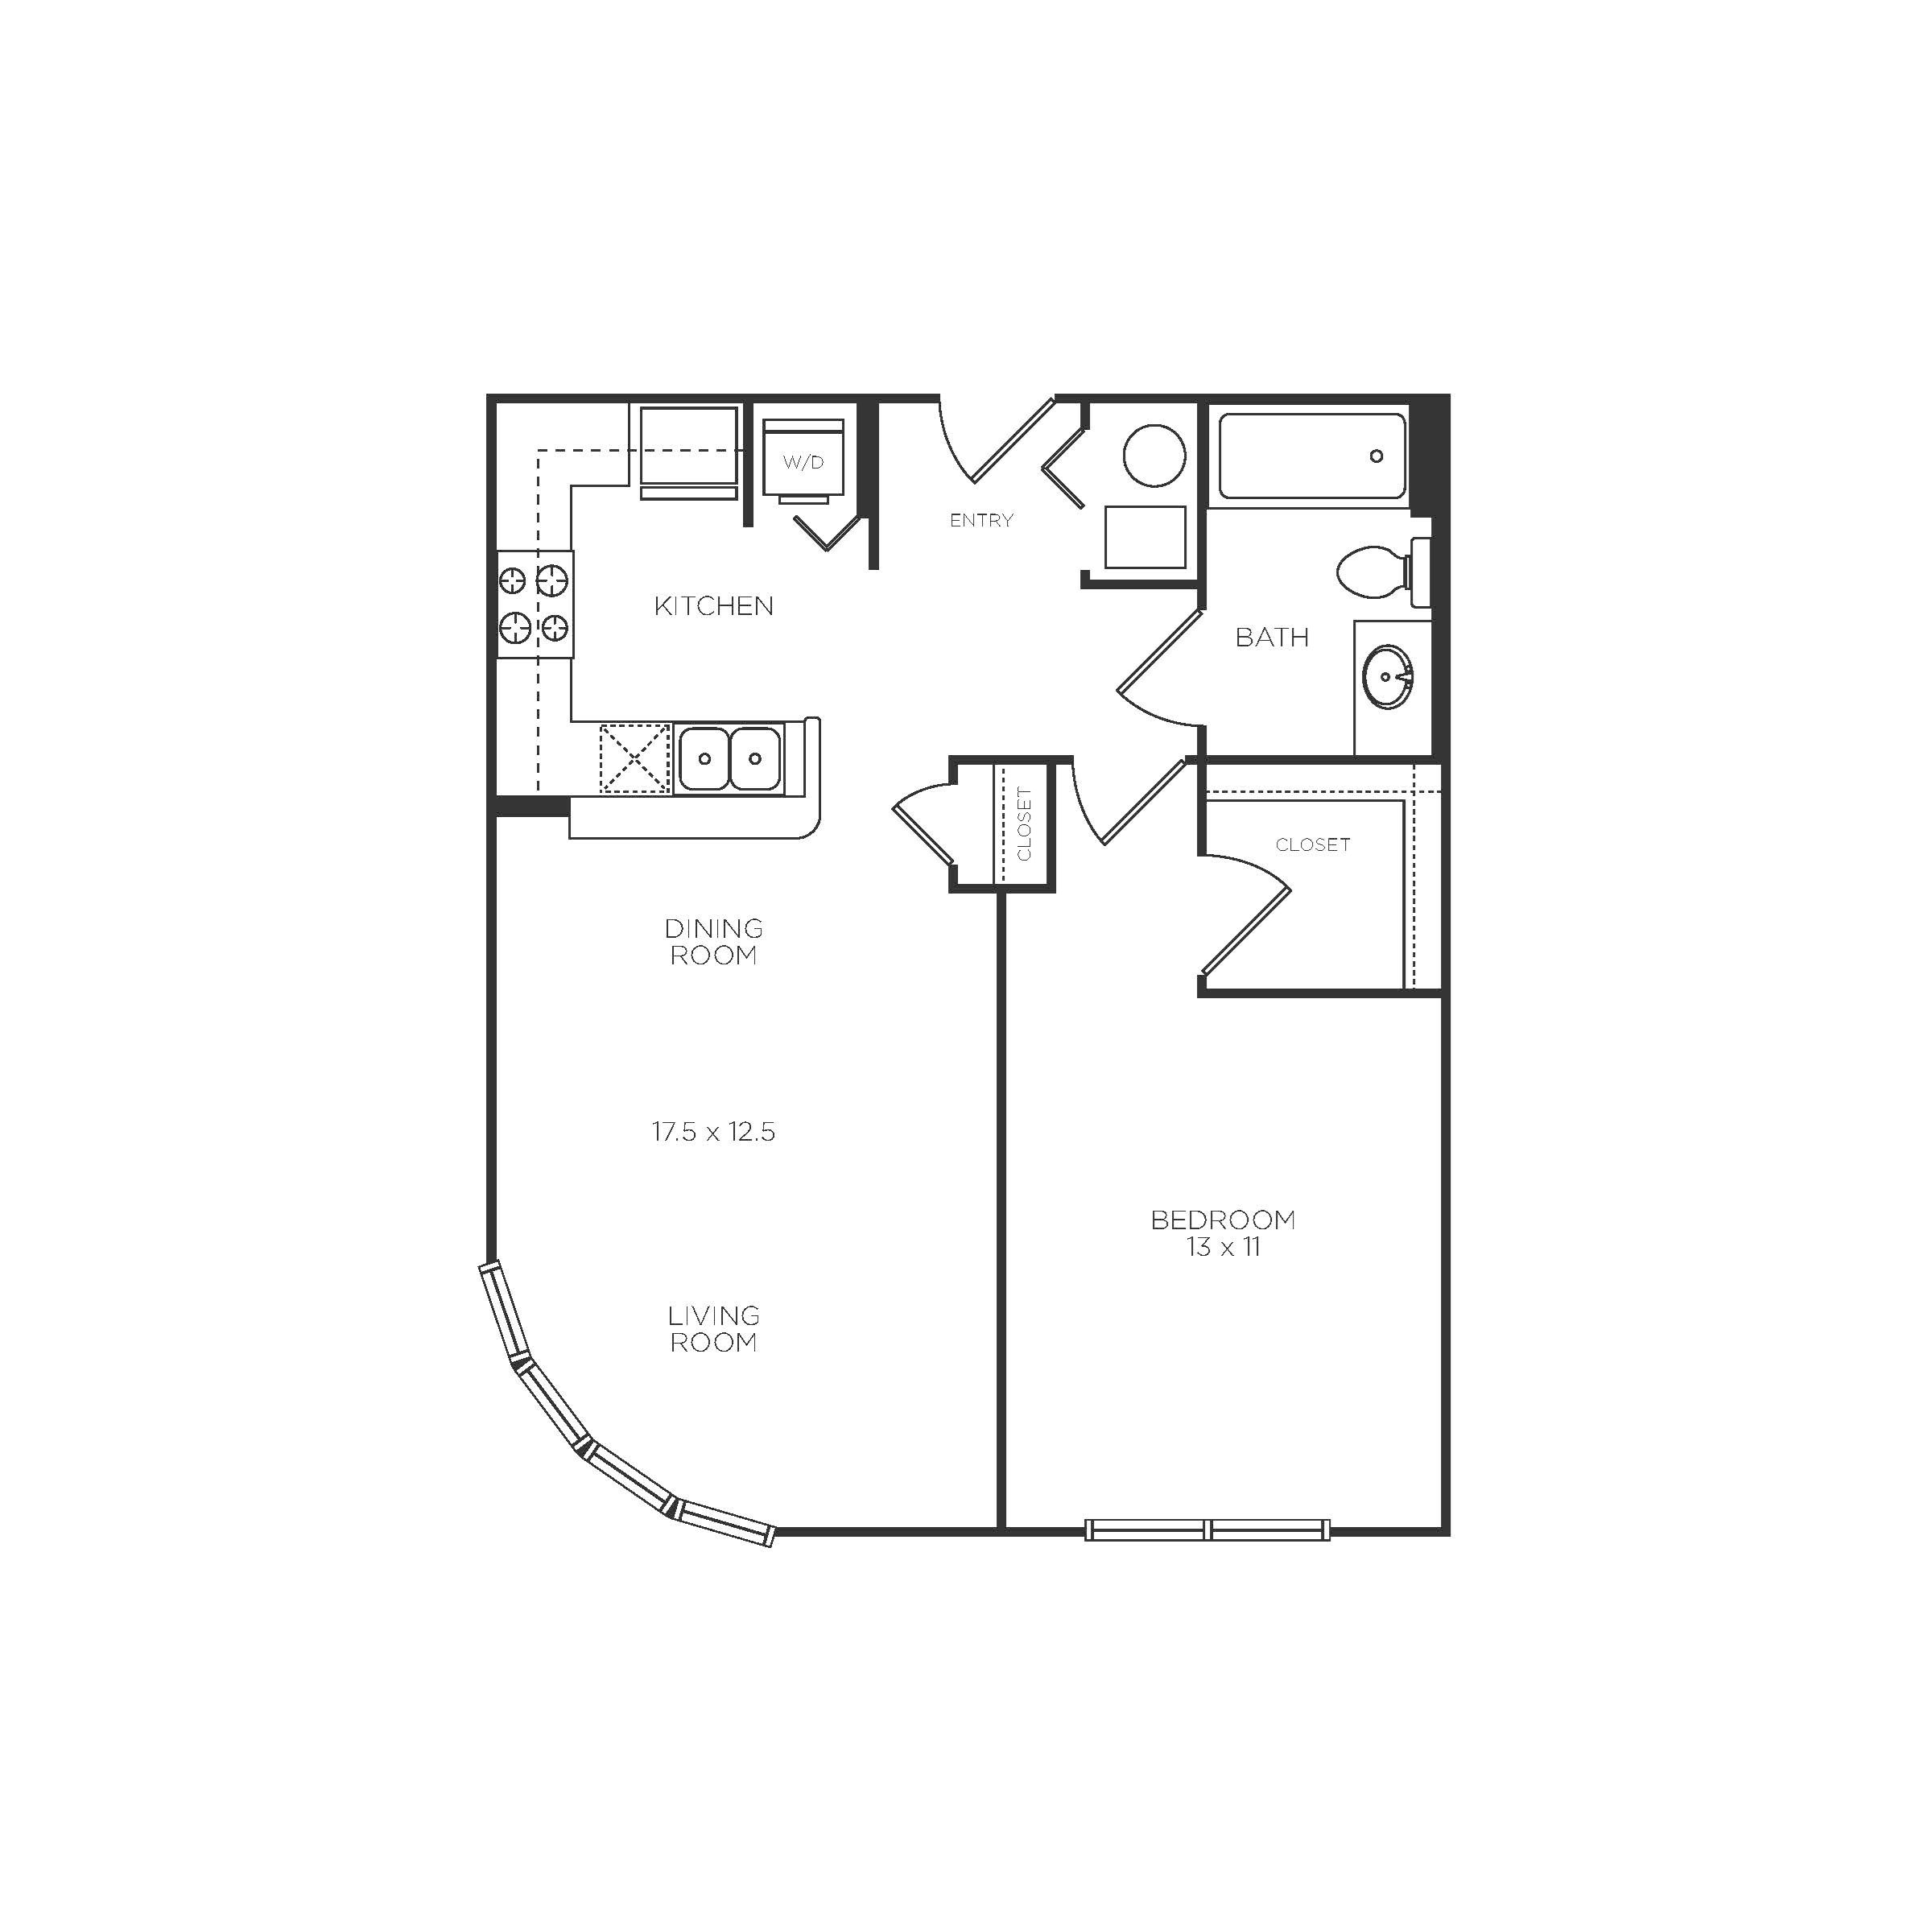 Floor Plans Of The Reserve In Evanston Il Schematic B4 Plan 20